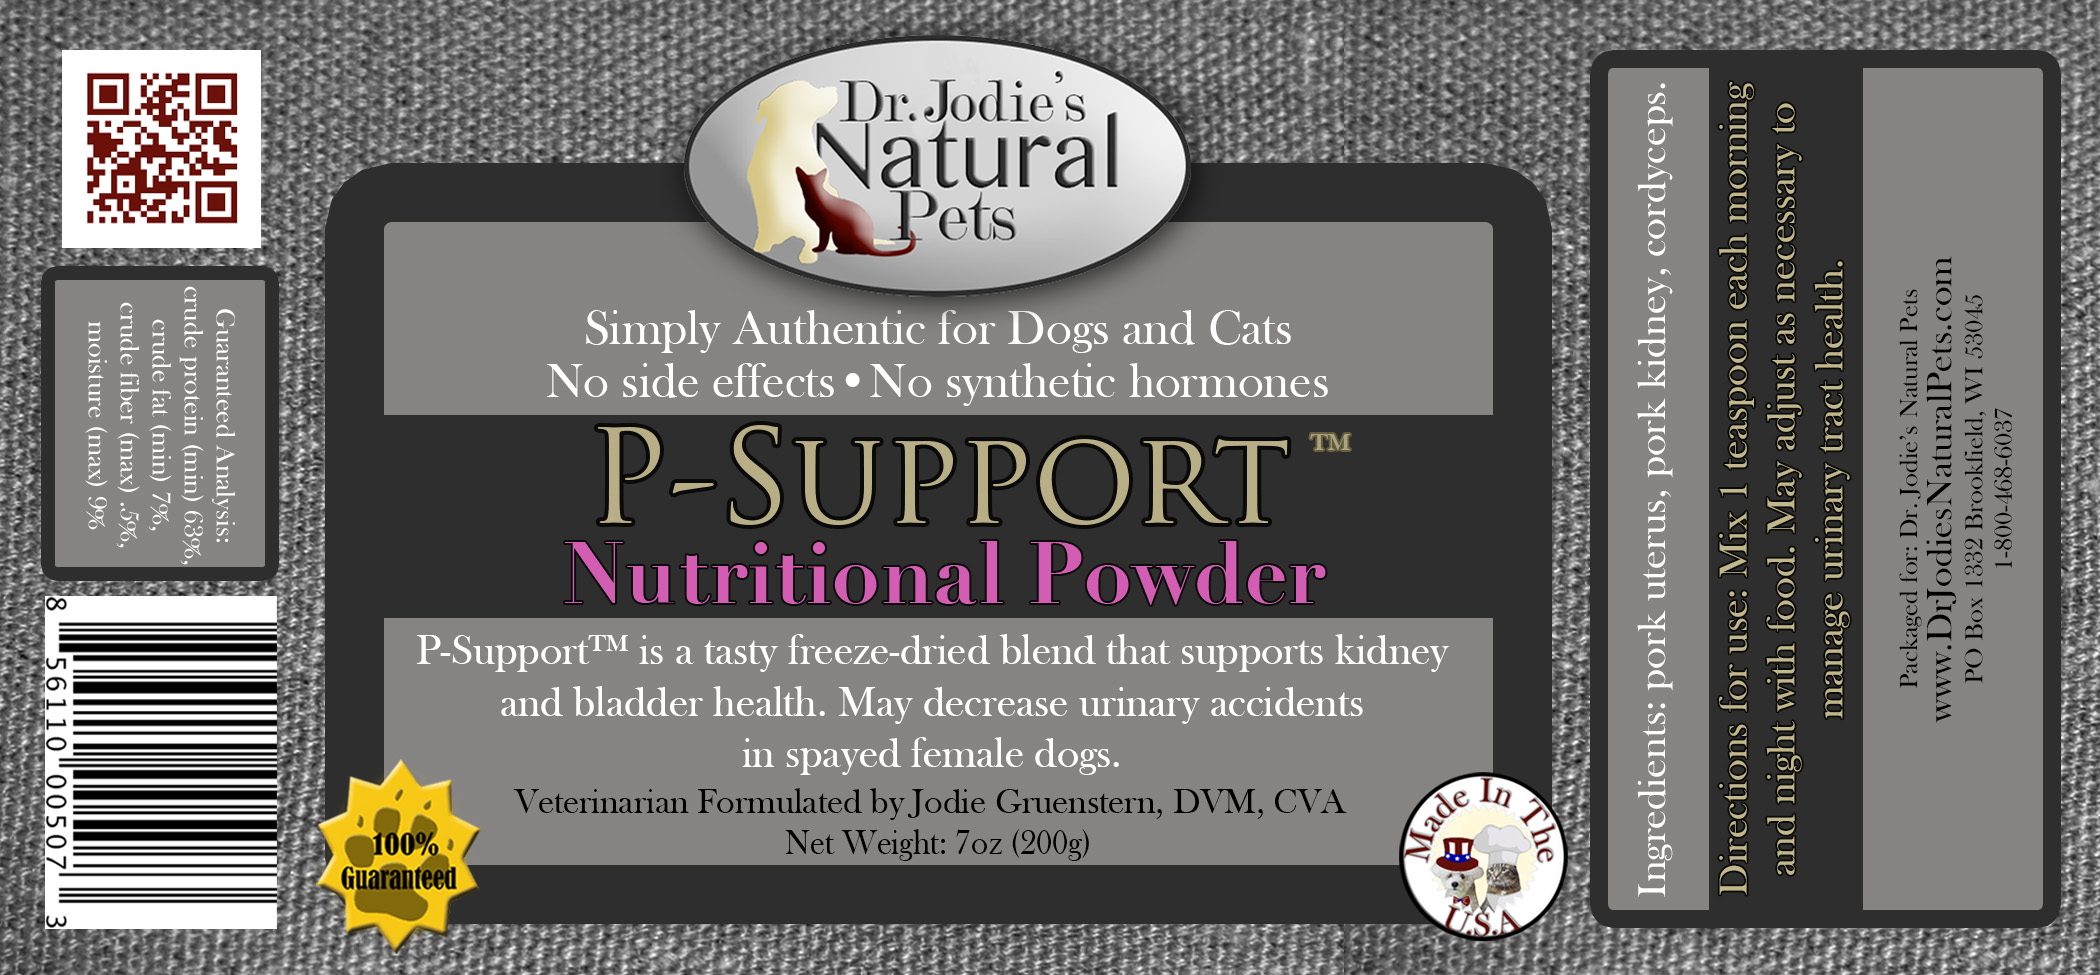 P-Support Nutritional Powder